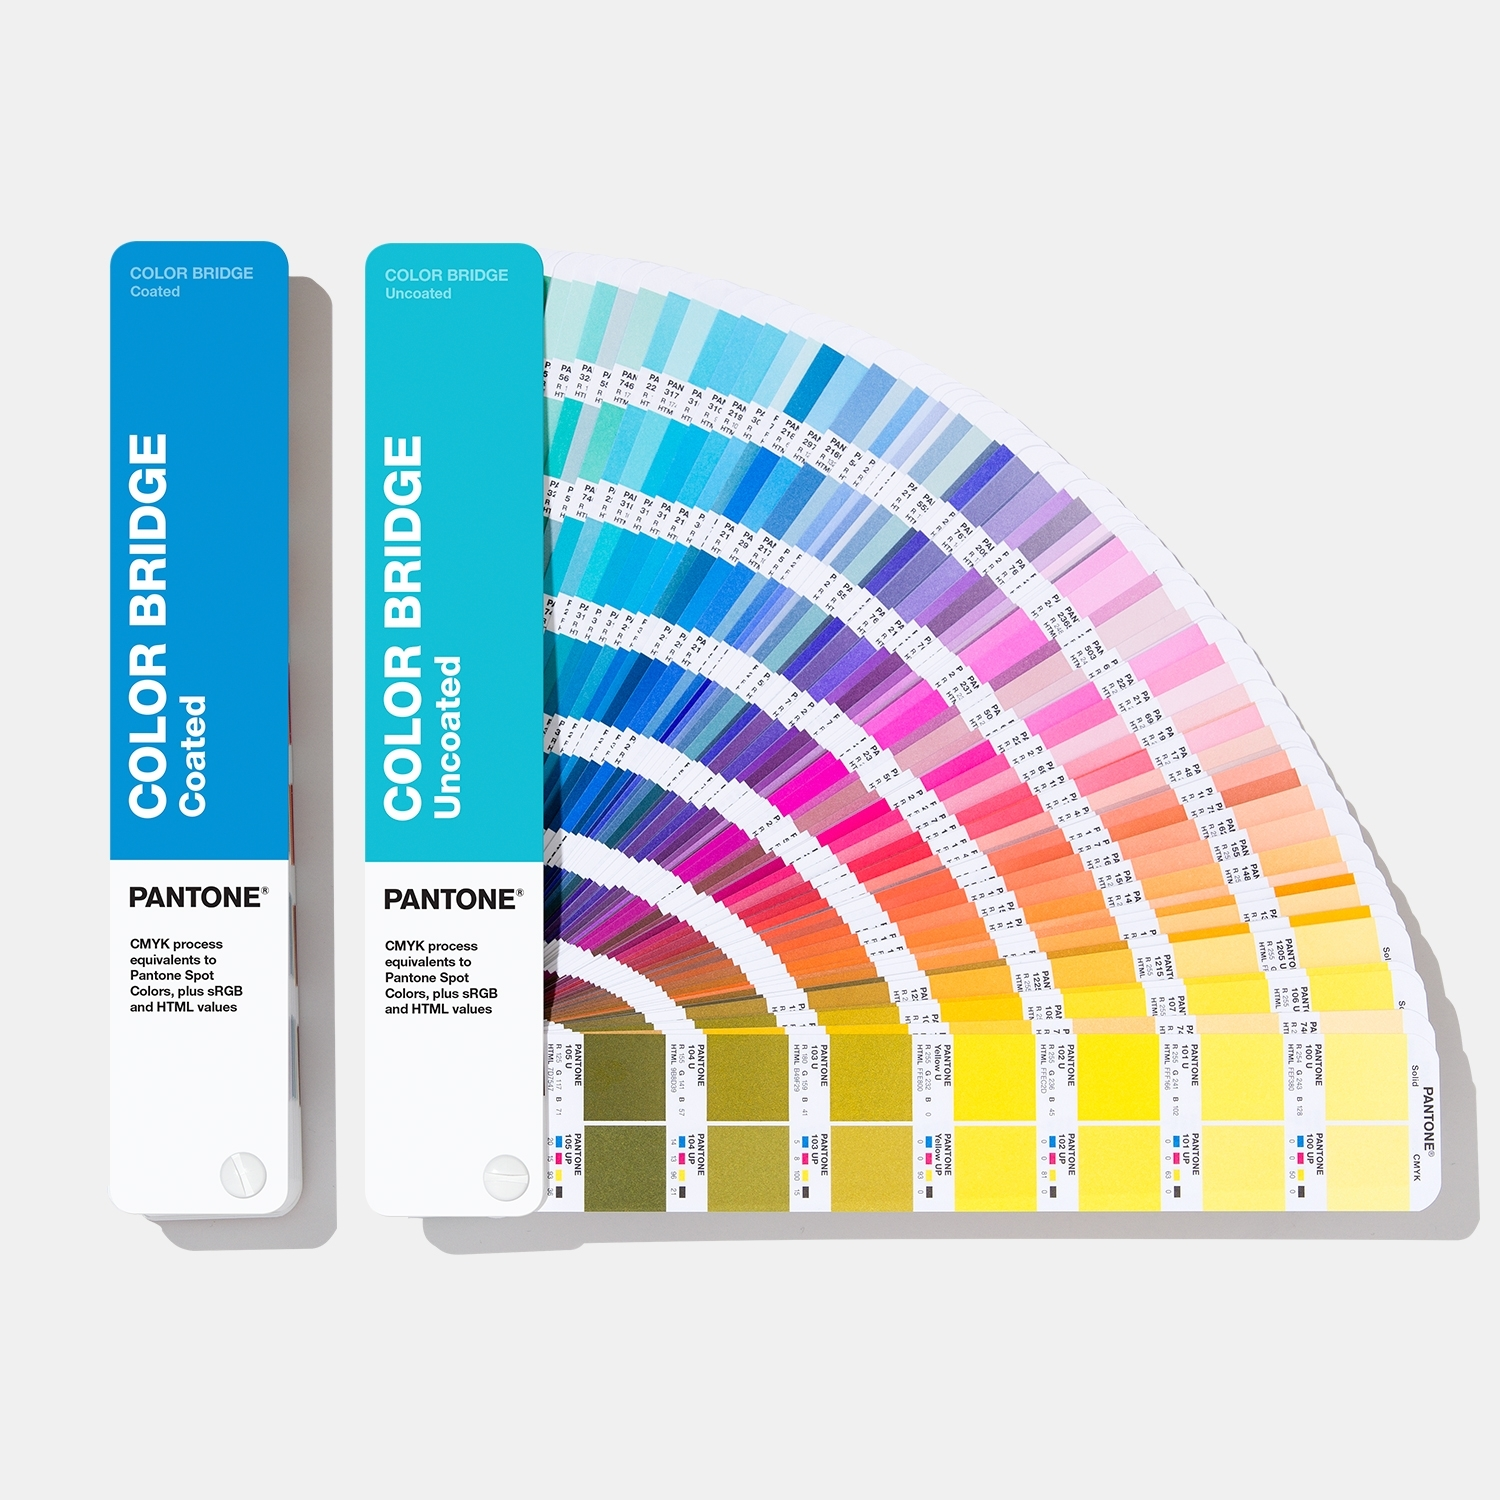 Pantone Color Bridge Guide | Coated Translate Pantone Colors into CMYK, HTML, RGB - View 1